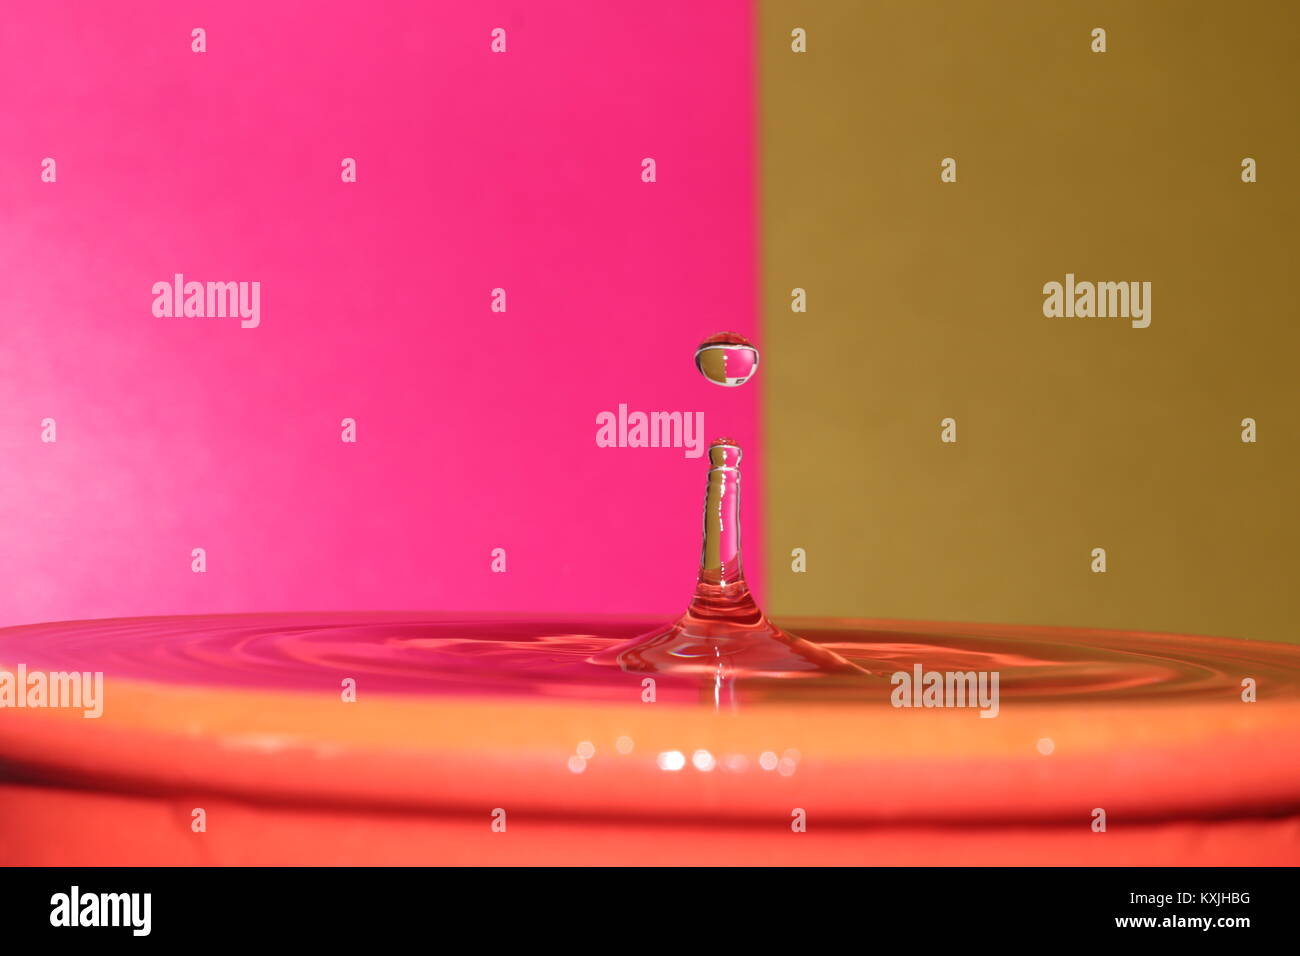 Water droplets two tone pink and yellow  colours create a stunning macro image rippling shimmering effect - Stock Image